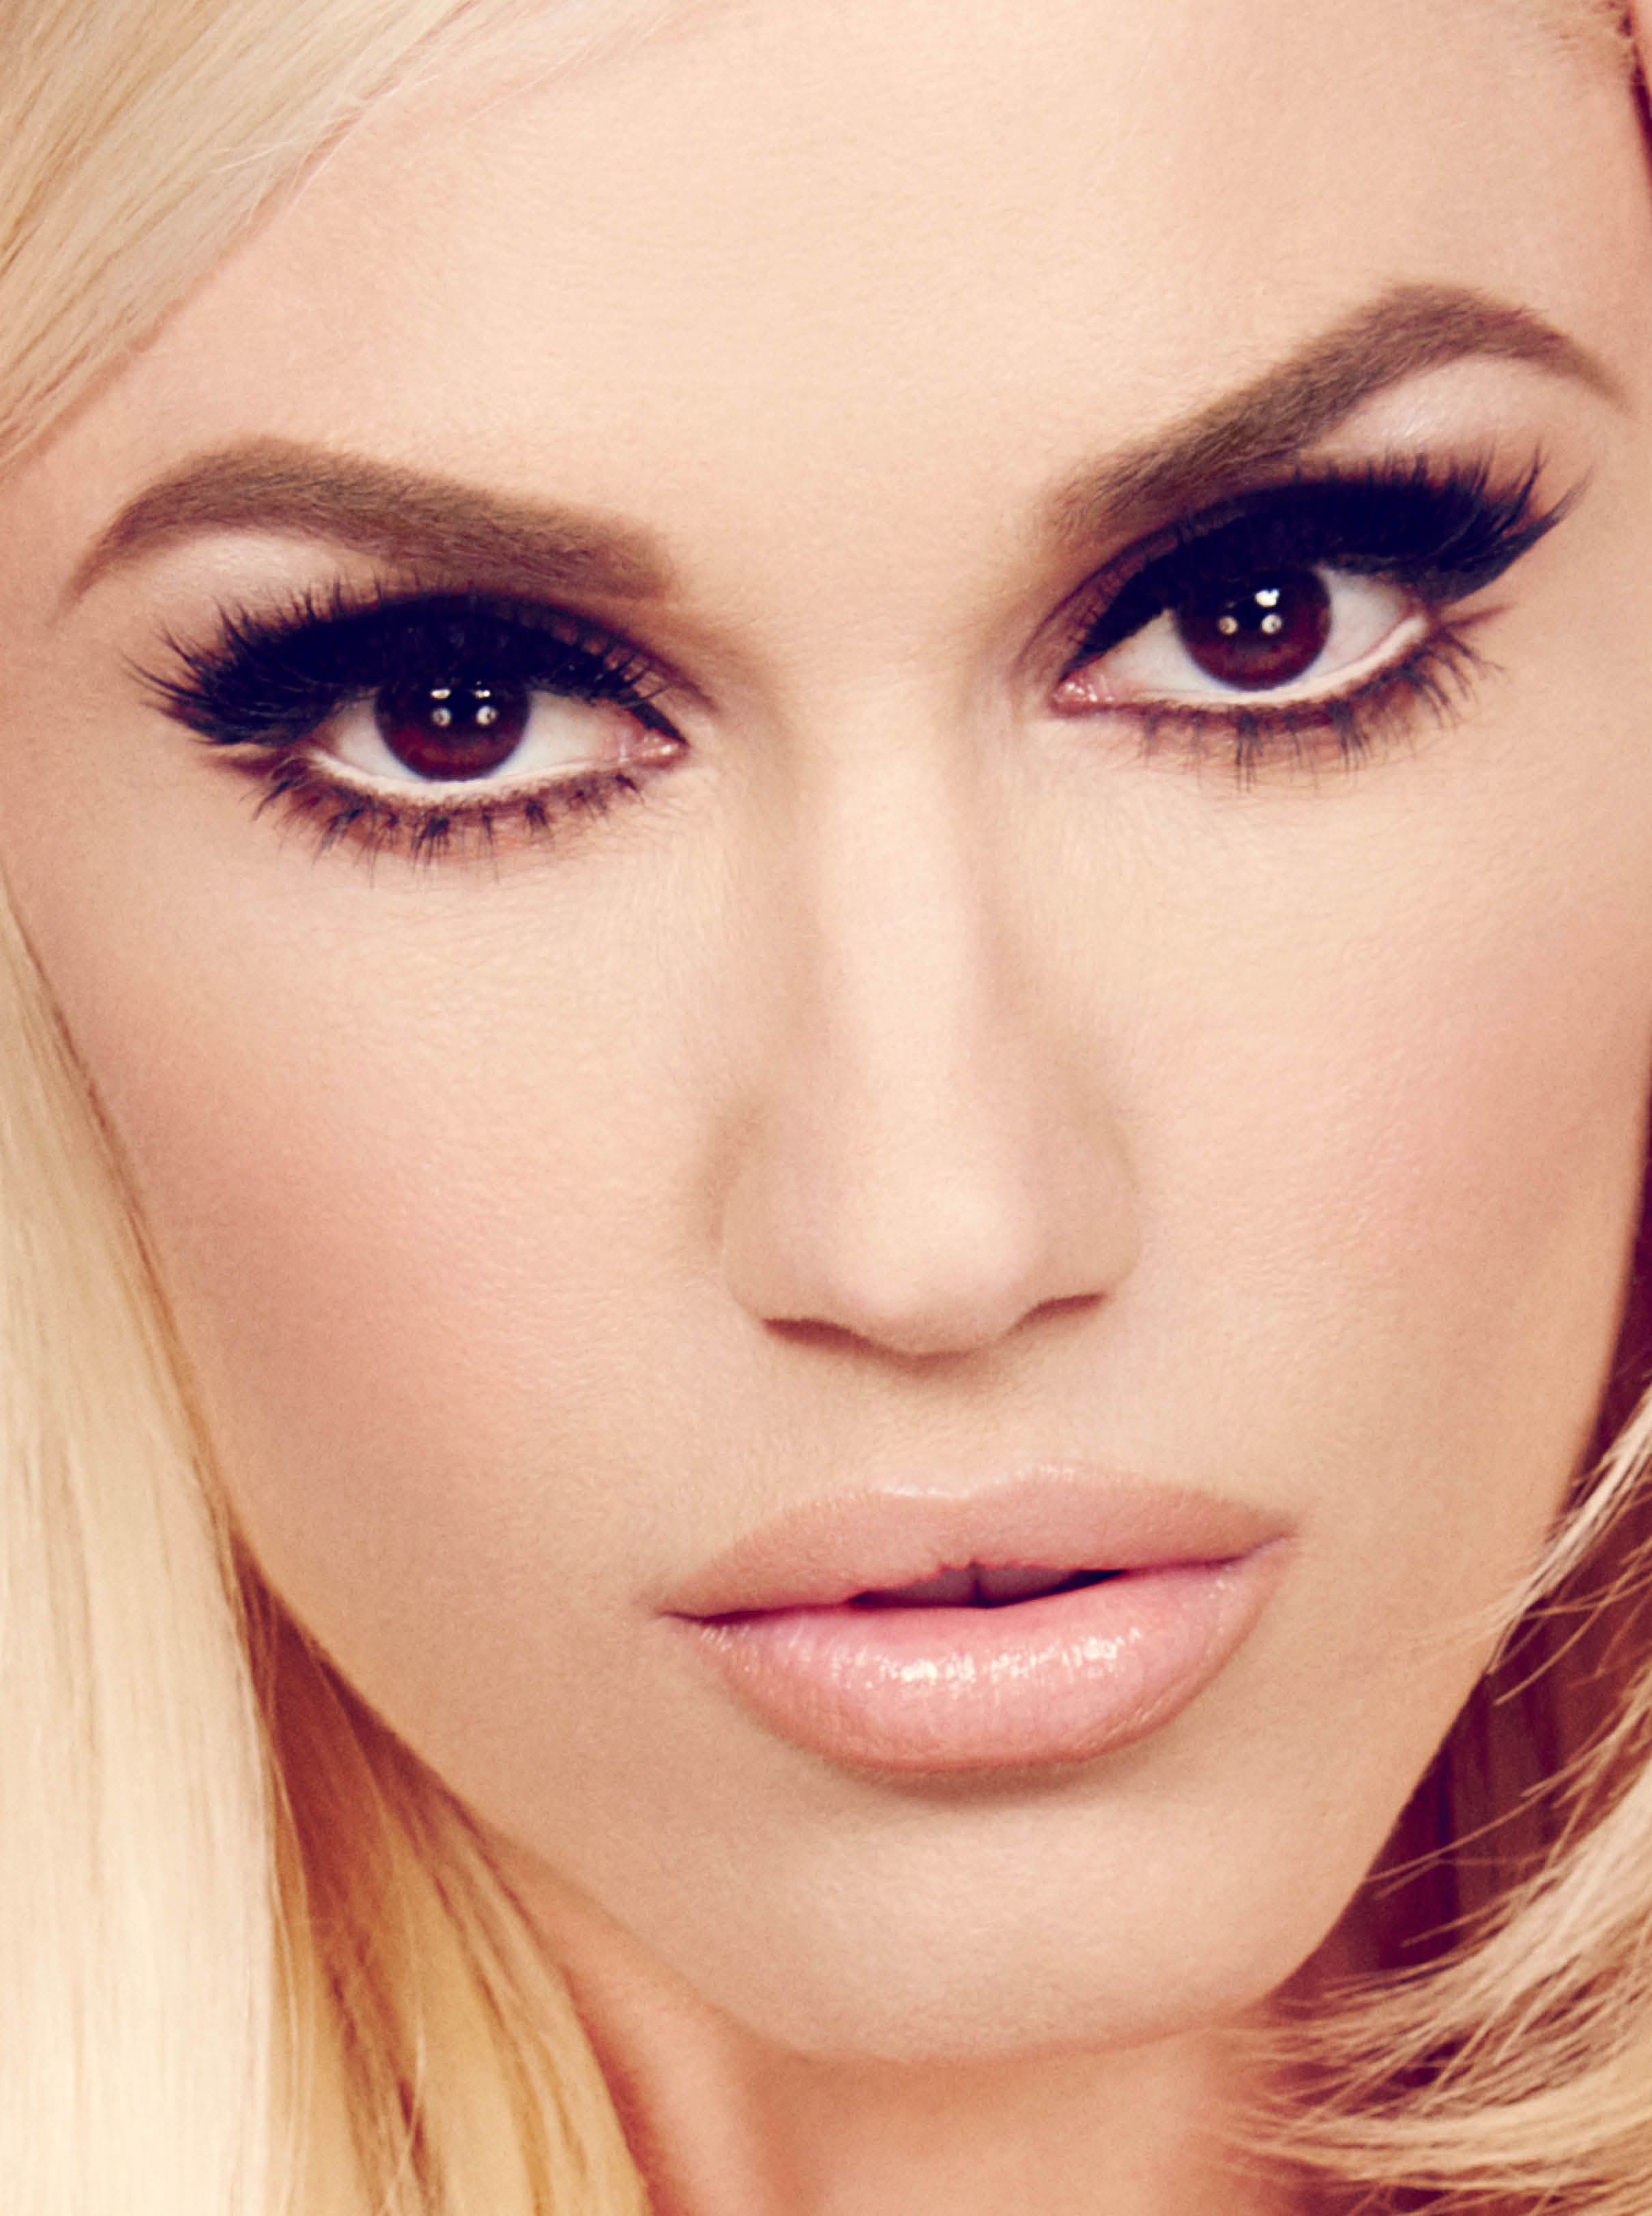 A Girl's Best Friend: Gwen Stefani Interviewed | Features ... Gwen Stefani